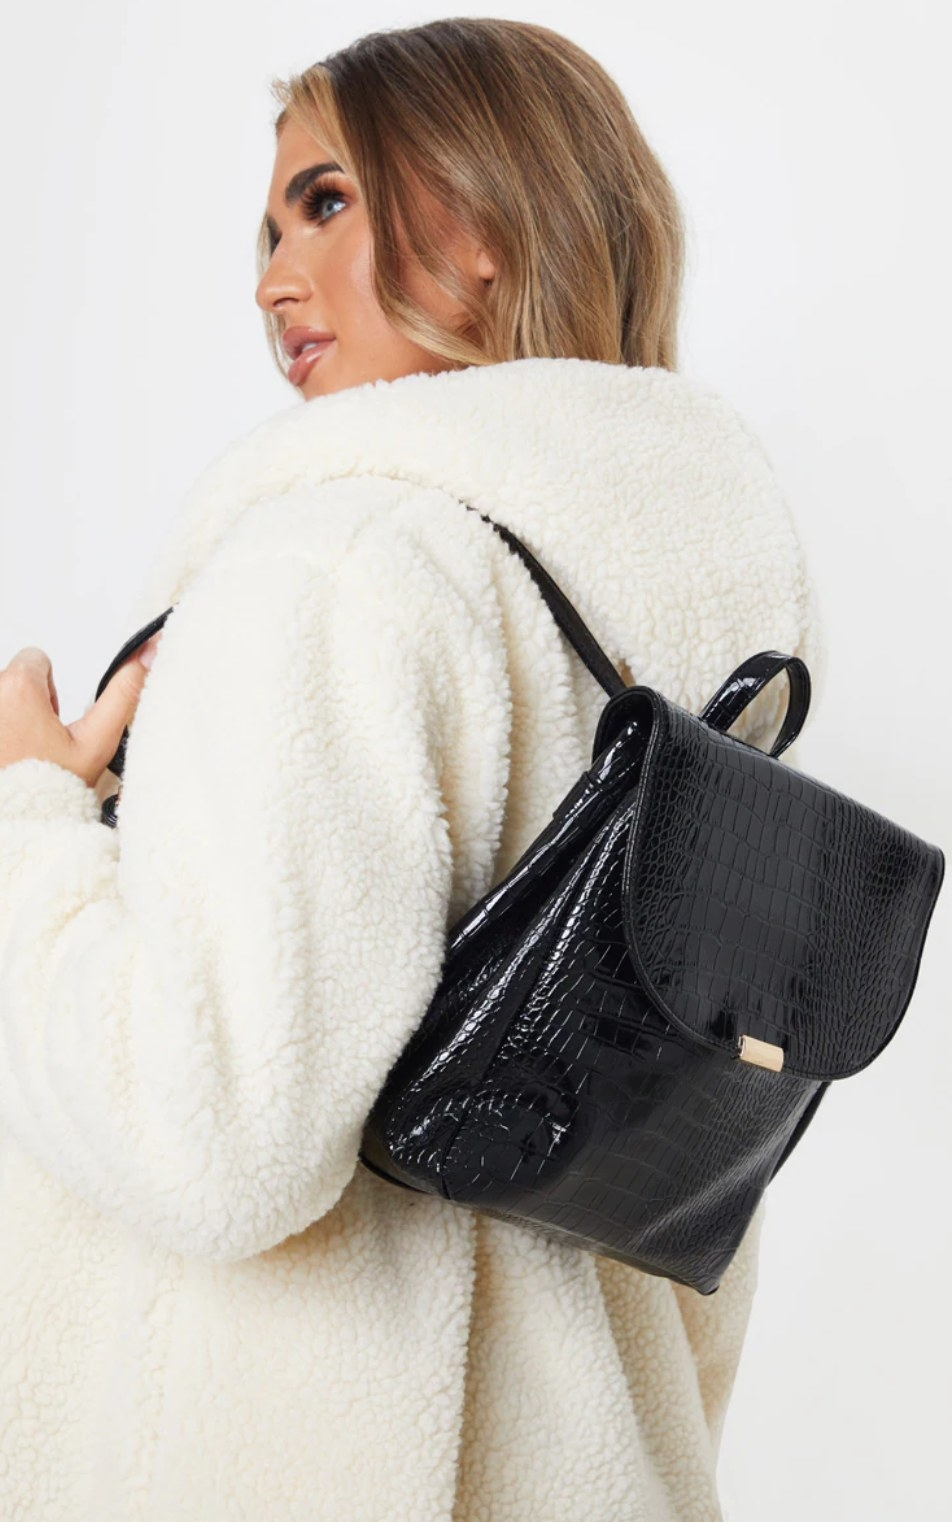 model wearing a fluffy white coat carrying the black backpack over one shoulder